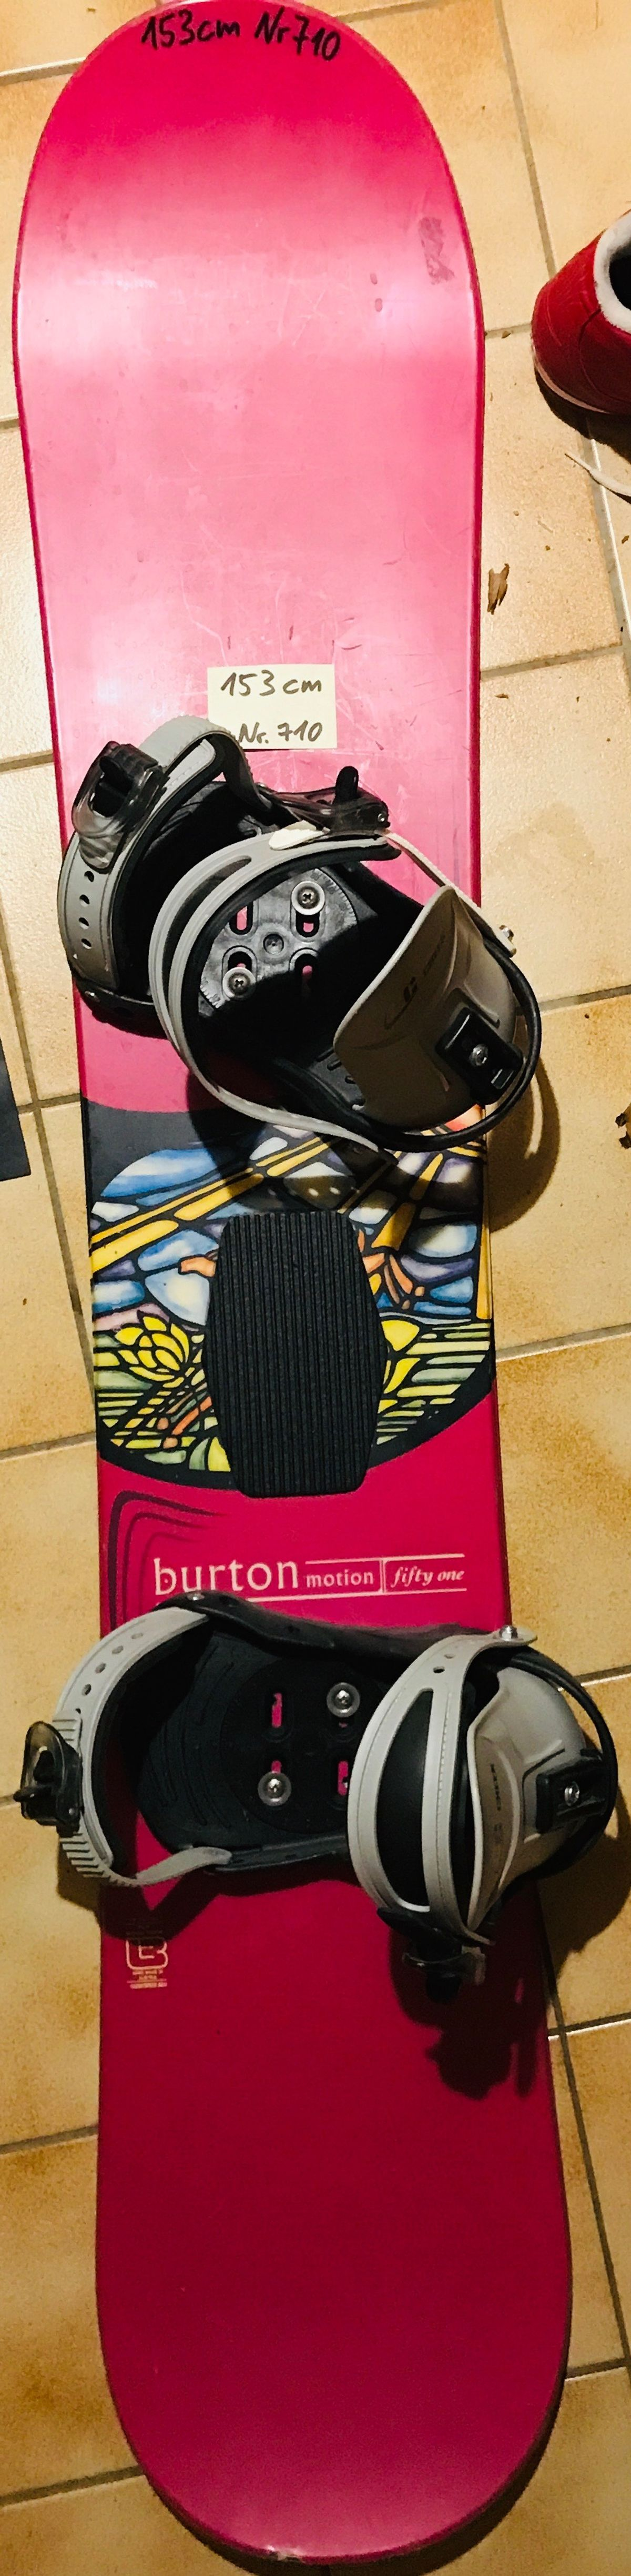 153 cm_Nr710_Burton motion fifty one - mit CC easy creek SoftBootBindung - pink